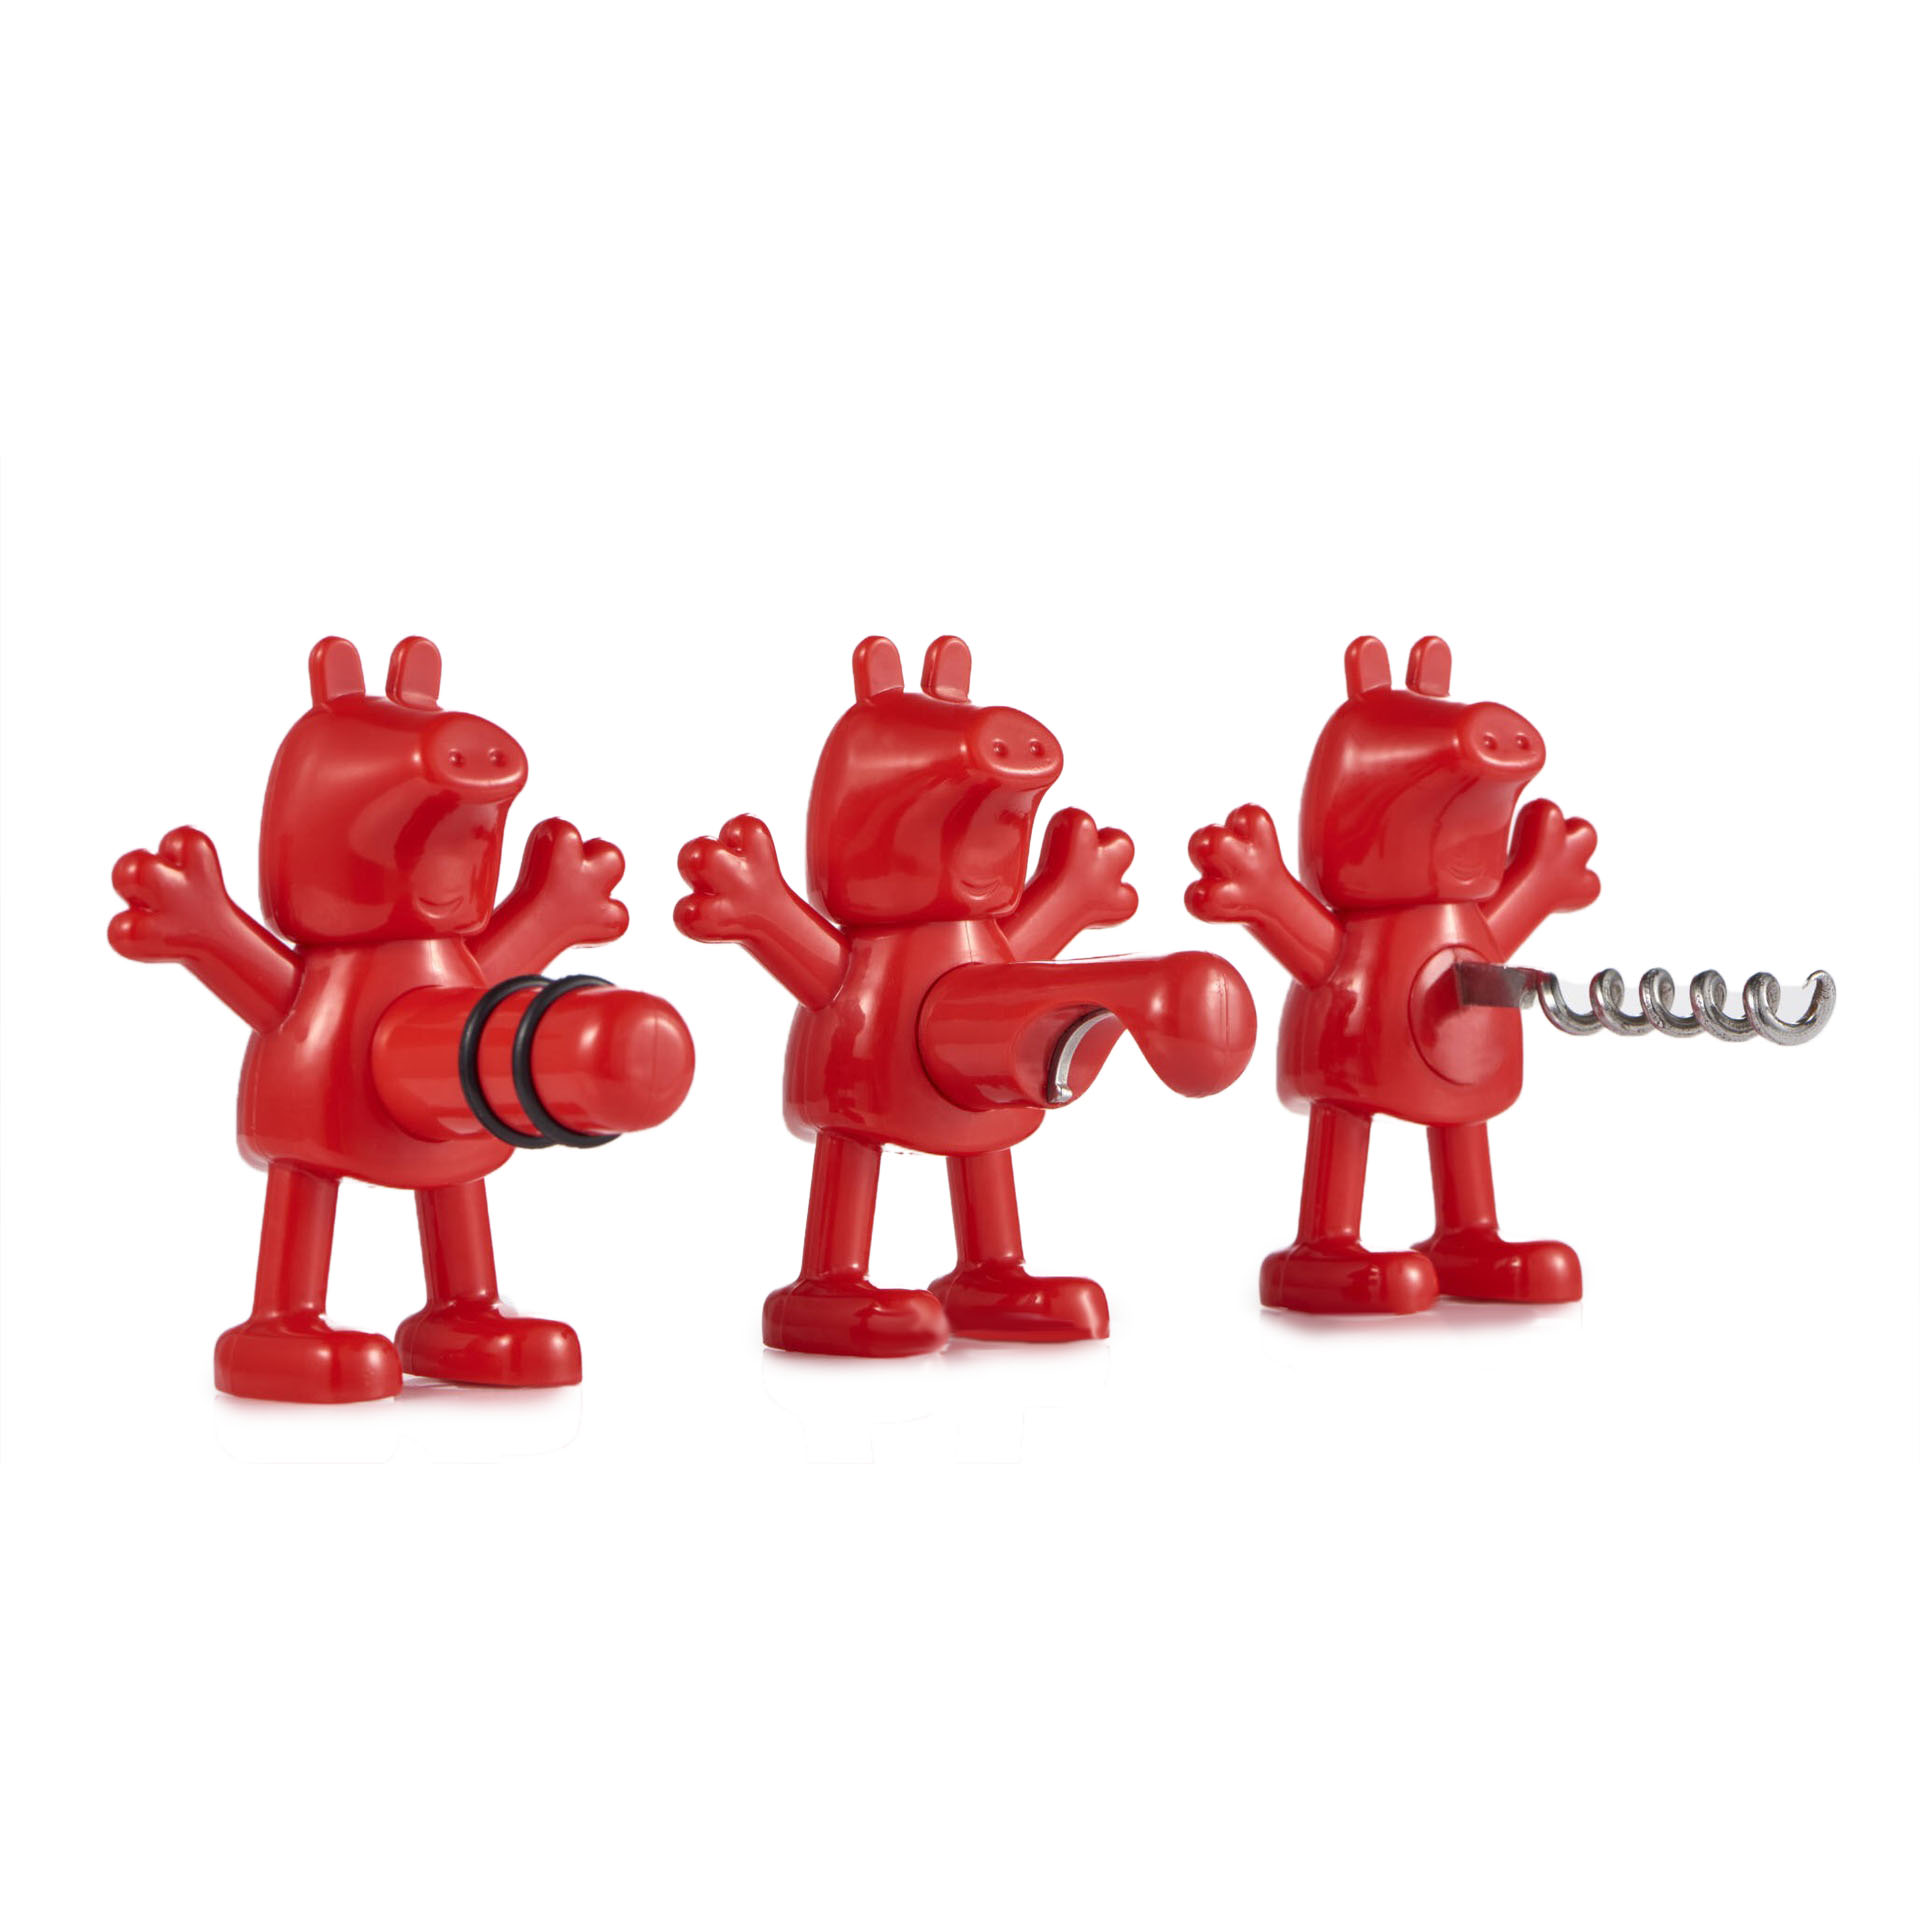 Honana Red Cartoon Opener Pig Pecs Stopper Red Beer Ope